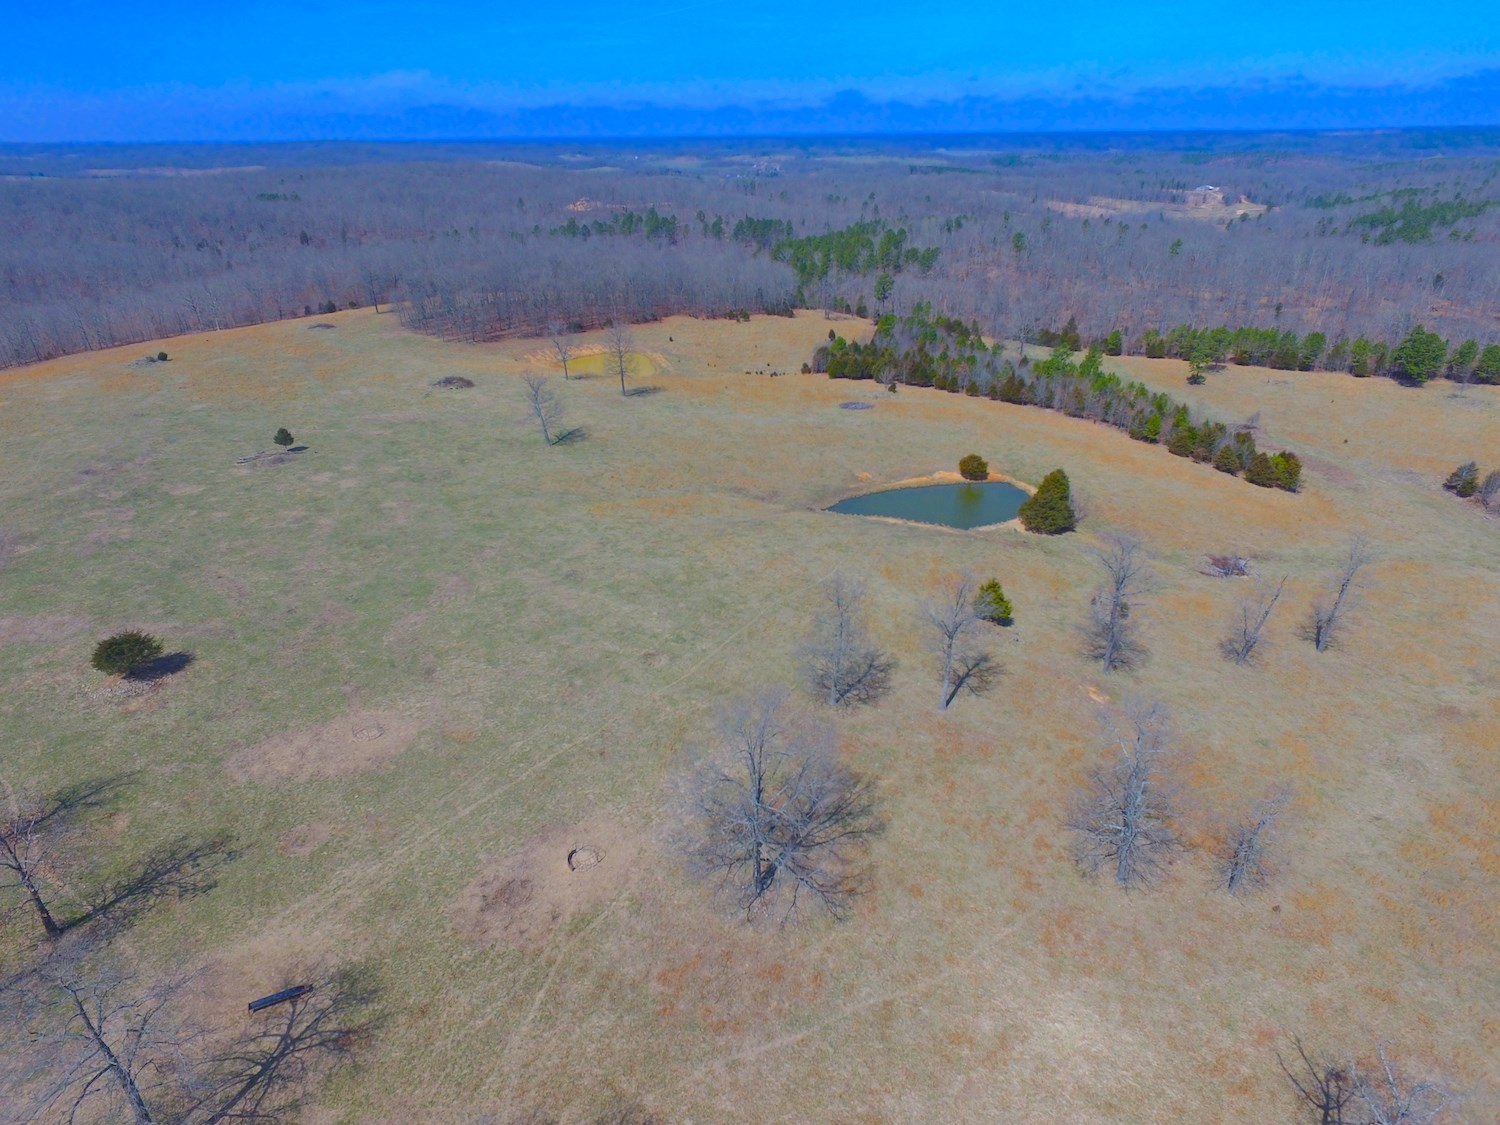 Pasture Land For Sale Near Alton, Missouri